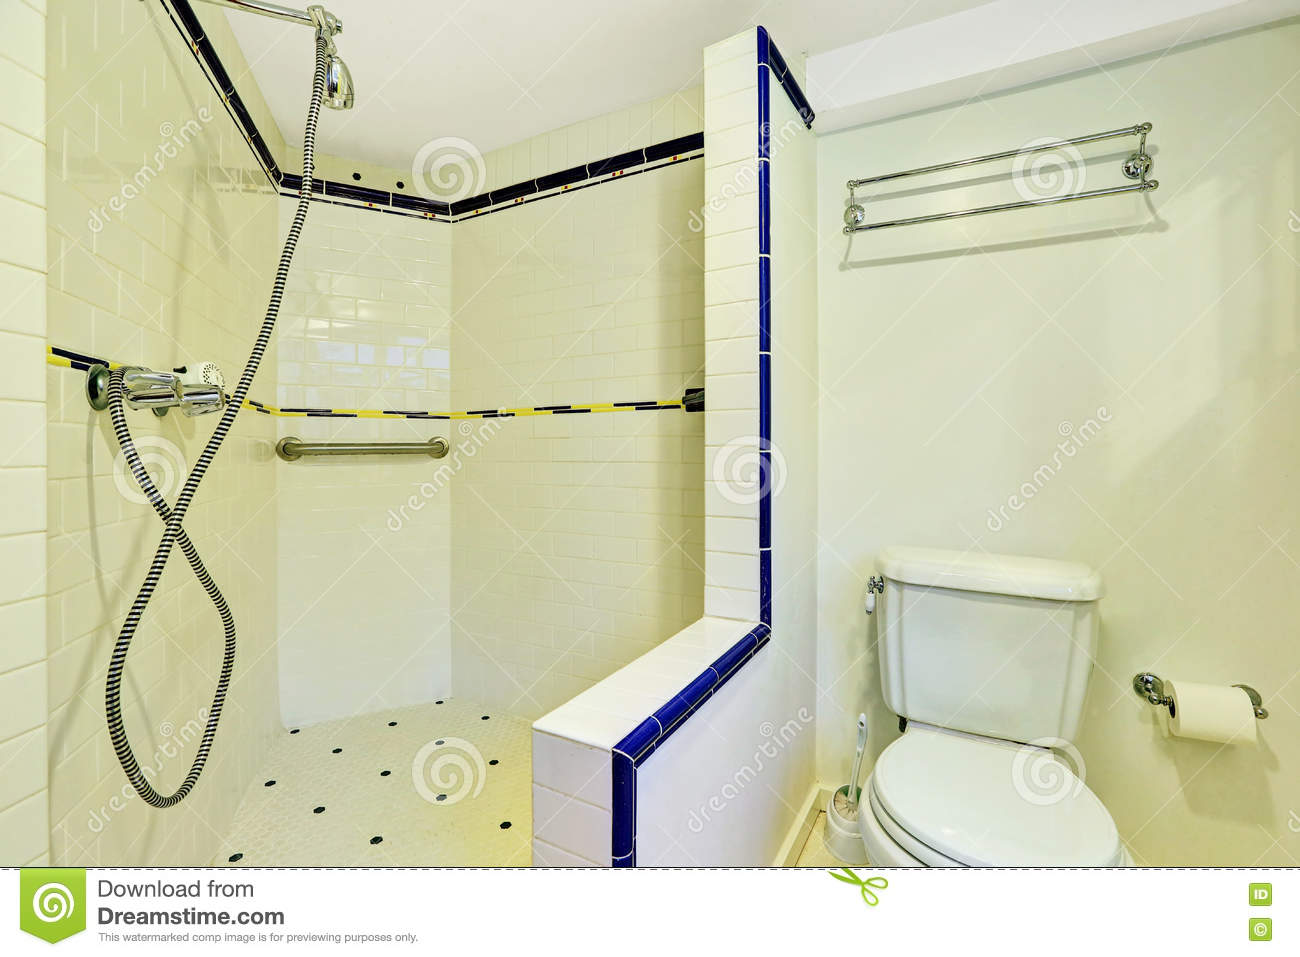 Interior Of White Bathroom With Large Walk-in Shower Stock Photo ...